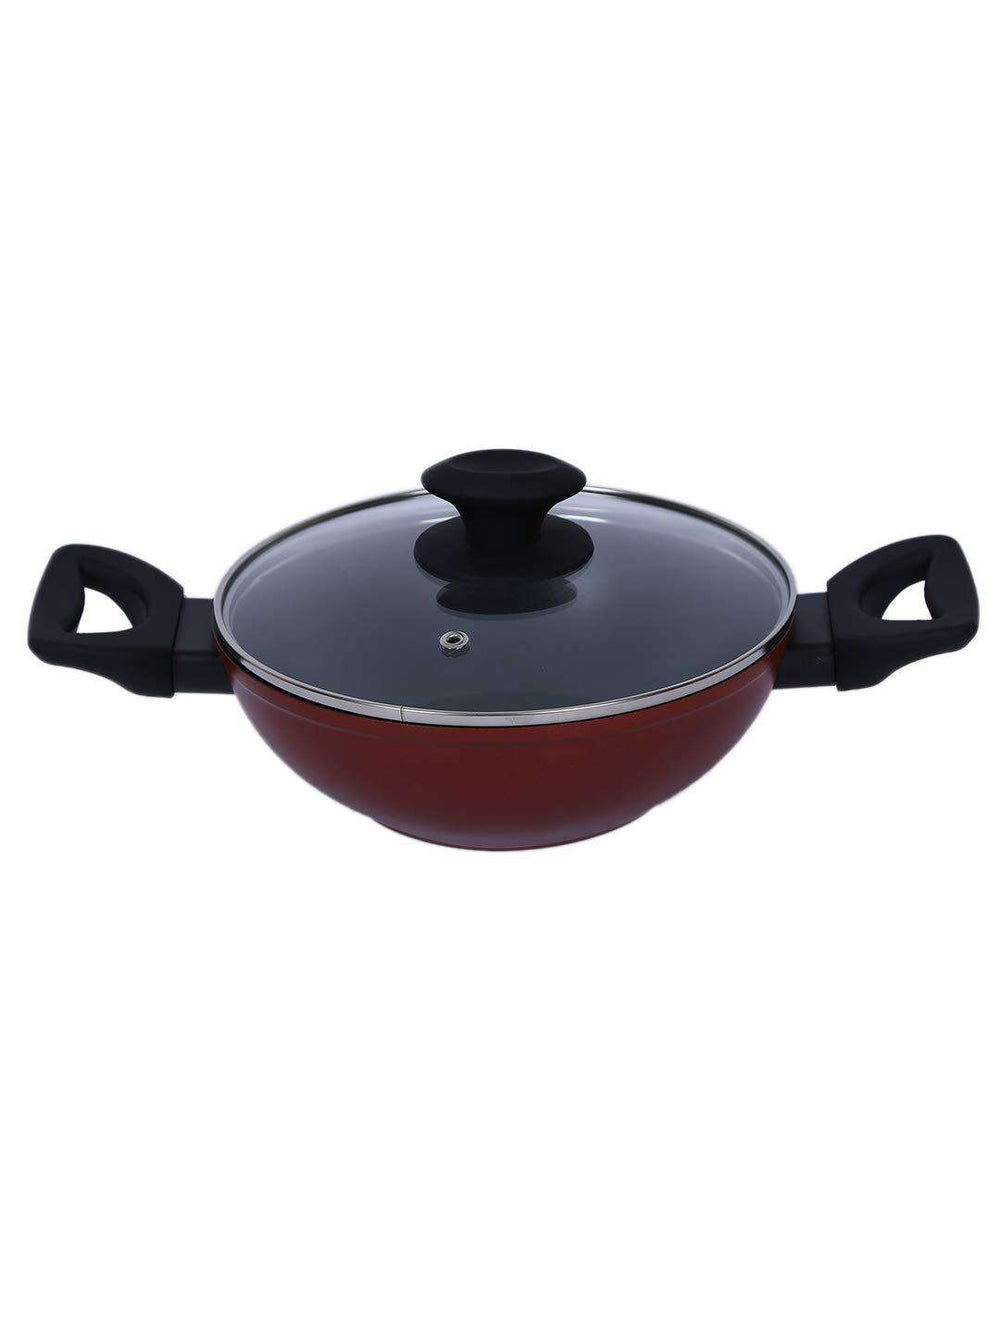 Bergner Scarlett Aluminium Wok with Glass Lid, 20 cm Induction Base